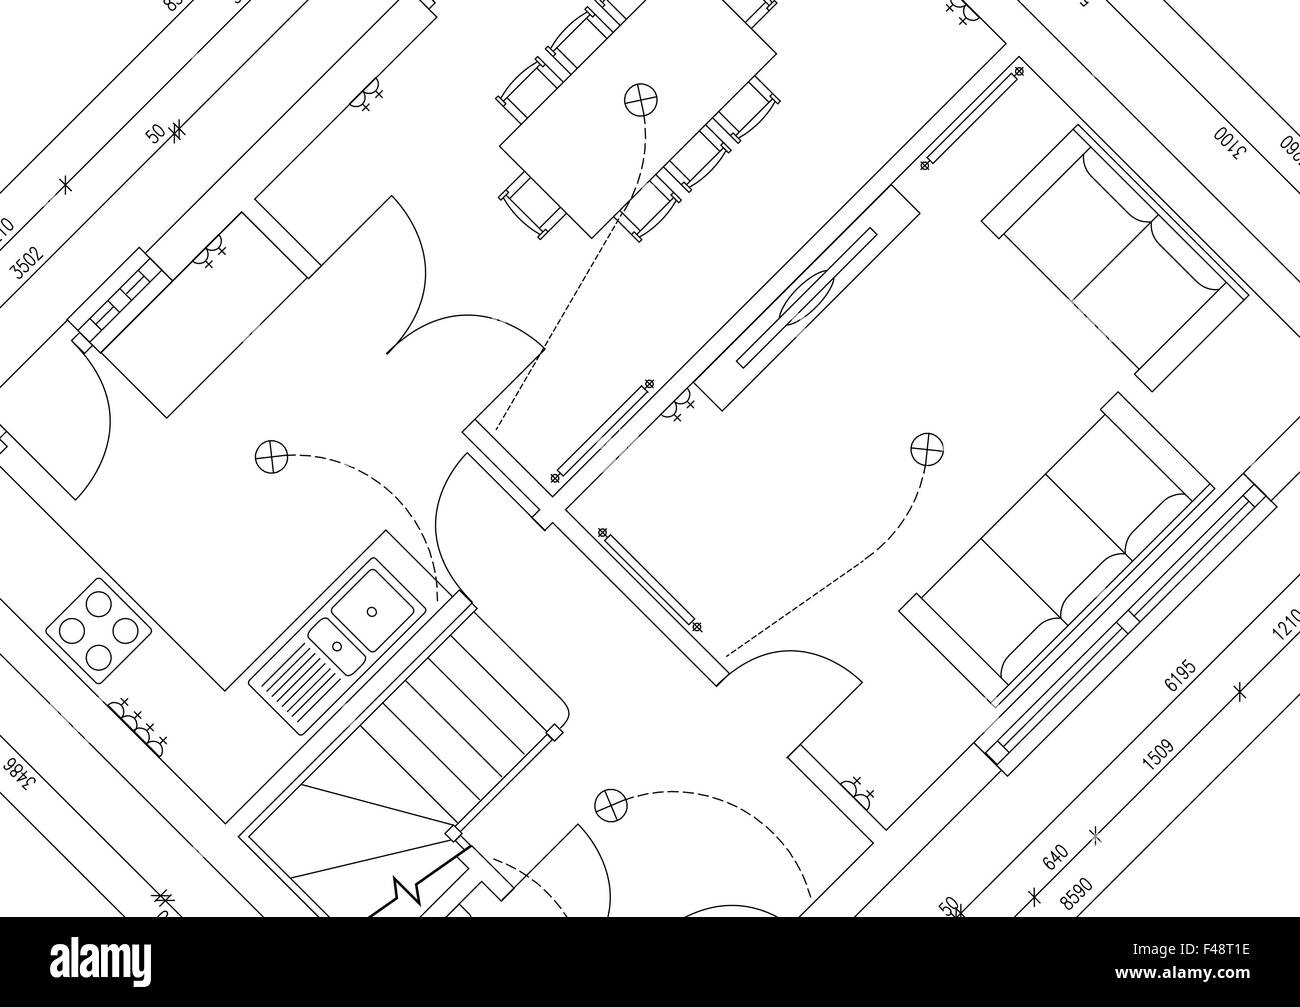 Blueprint plan of 3 bedroom house stock photo 88704938 alamy blueprint plan of 3 bedroom house malvernweather Choice Image